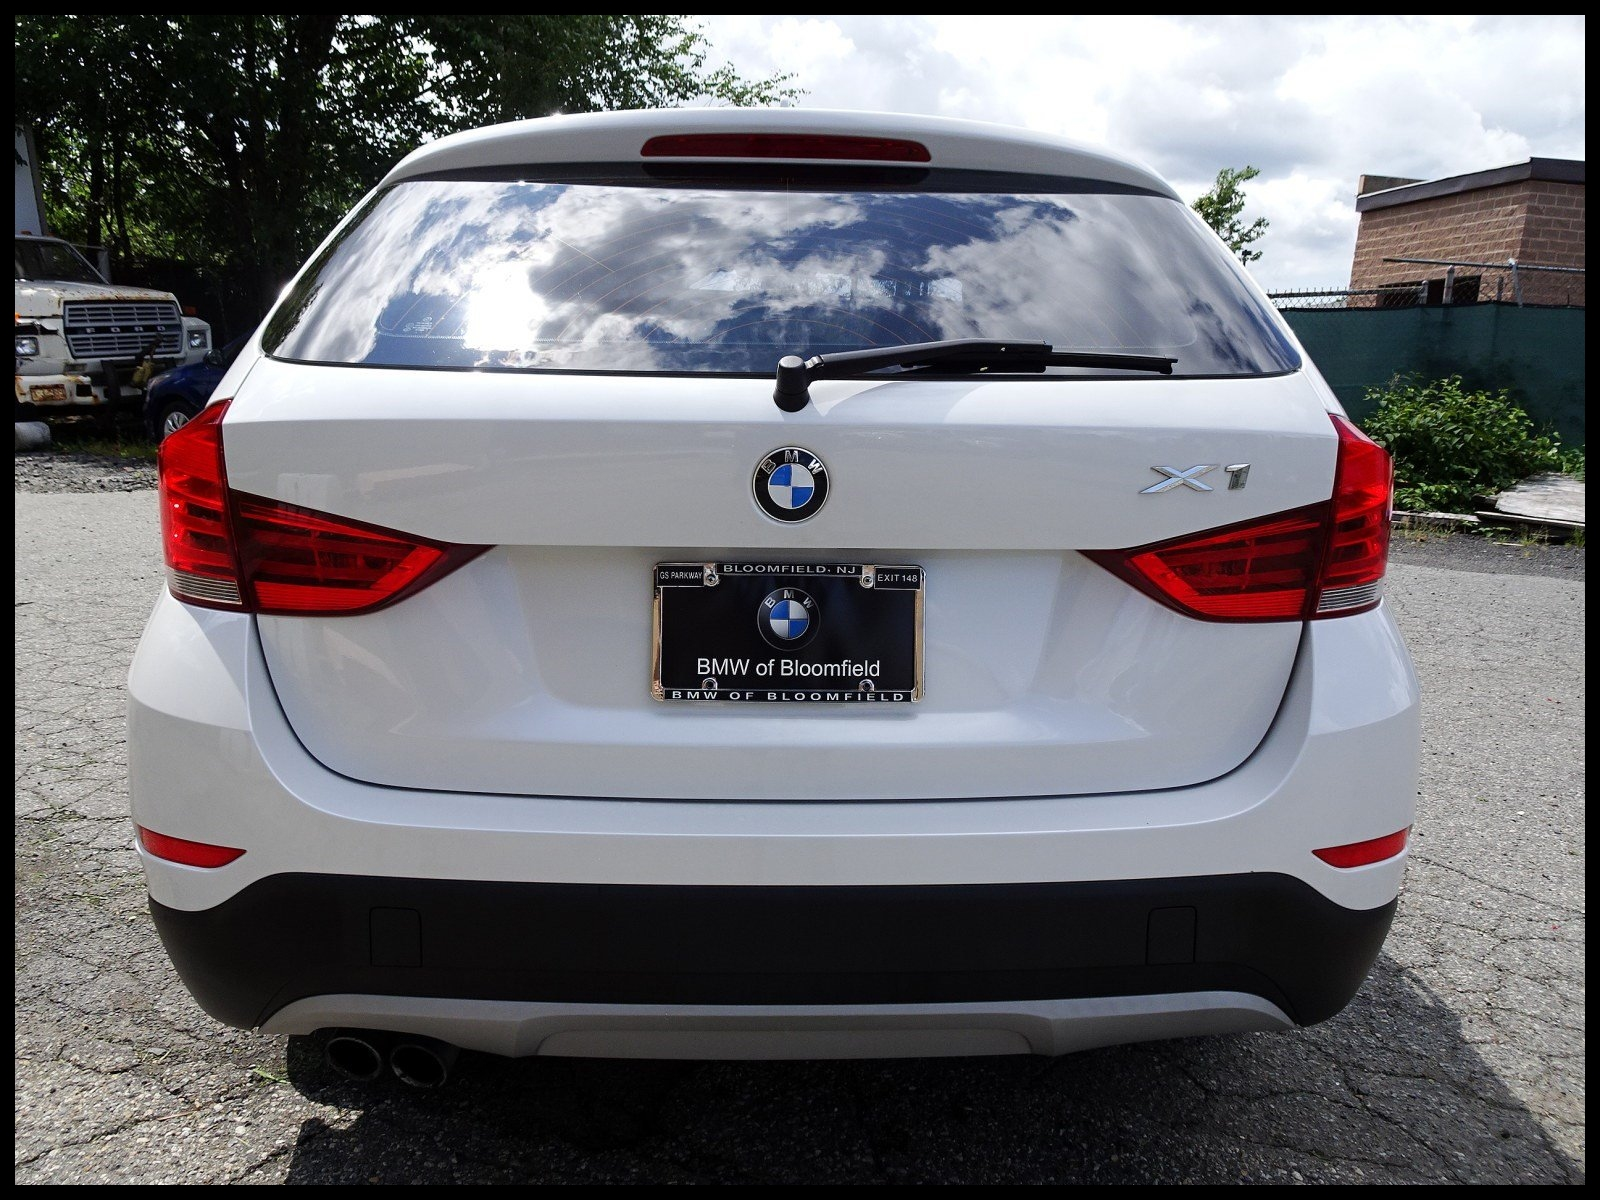 BMW of Bloomfield Bloomfield NJ Car Dealership and Auto Financing Autotrader